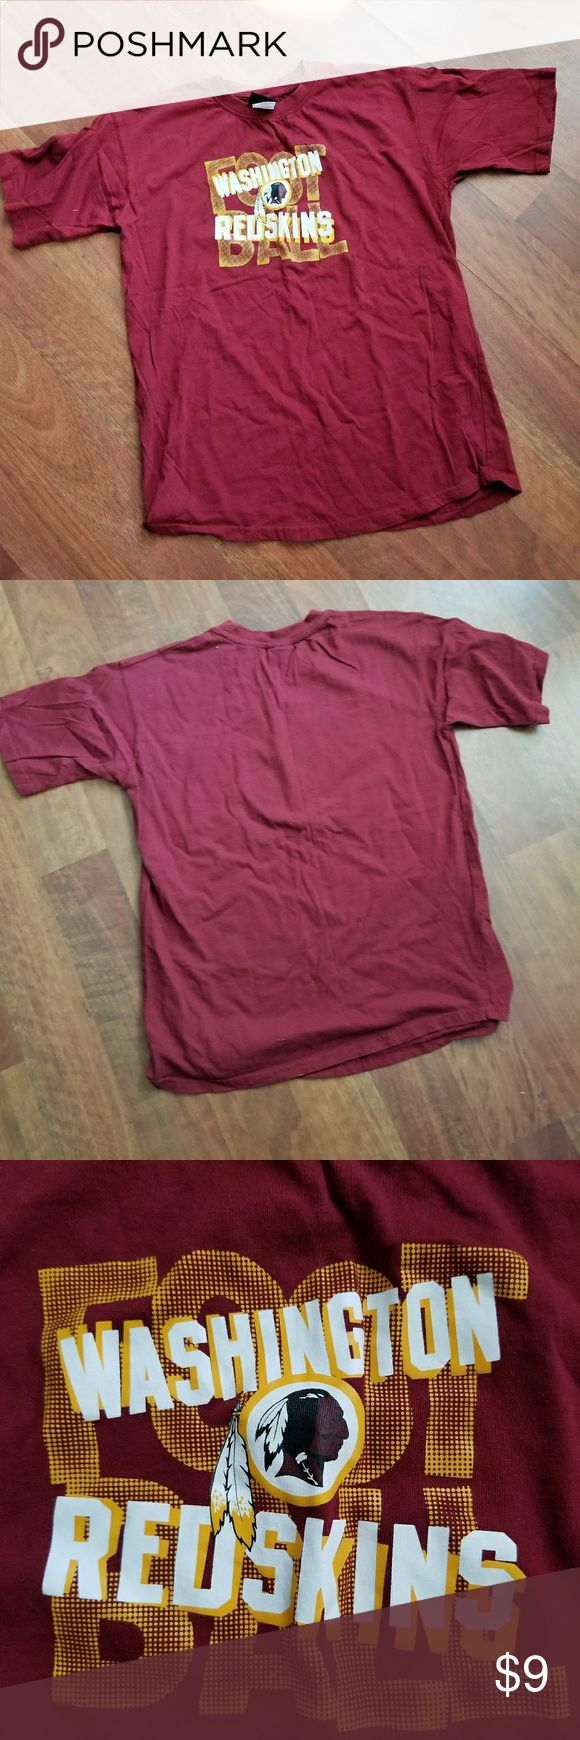 Washington Redskins Football Team T shirt Size L Great condition! NO stains or holes but does have average wear. Great for the Redskins fan. Size Large Shirts Tees - Short Sleeve